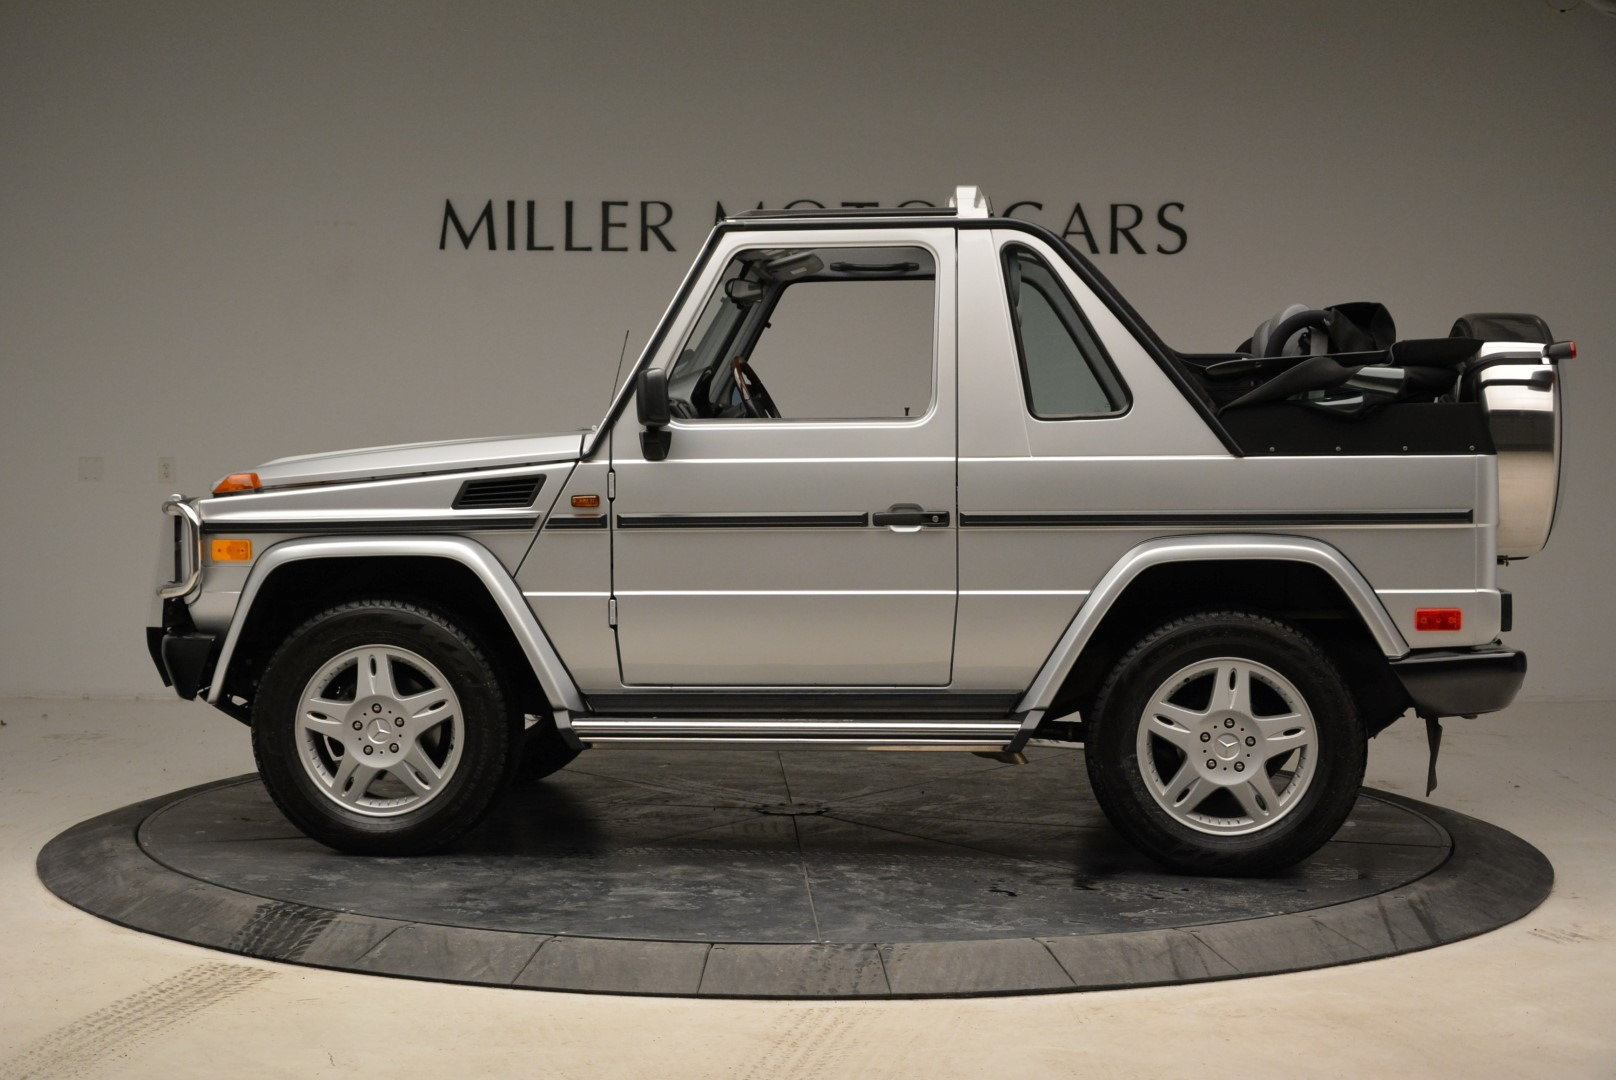 Pre Owned 1999 Mercedes Benz G500 Cabriolet For Sale Miller Motorcars Stock Mc263a